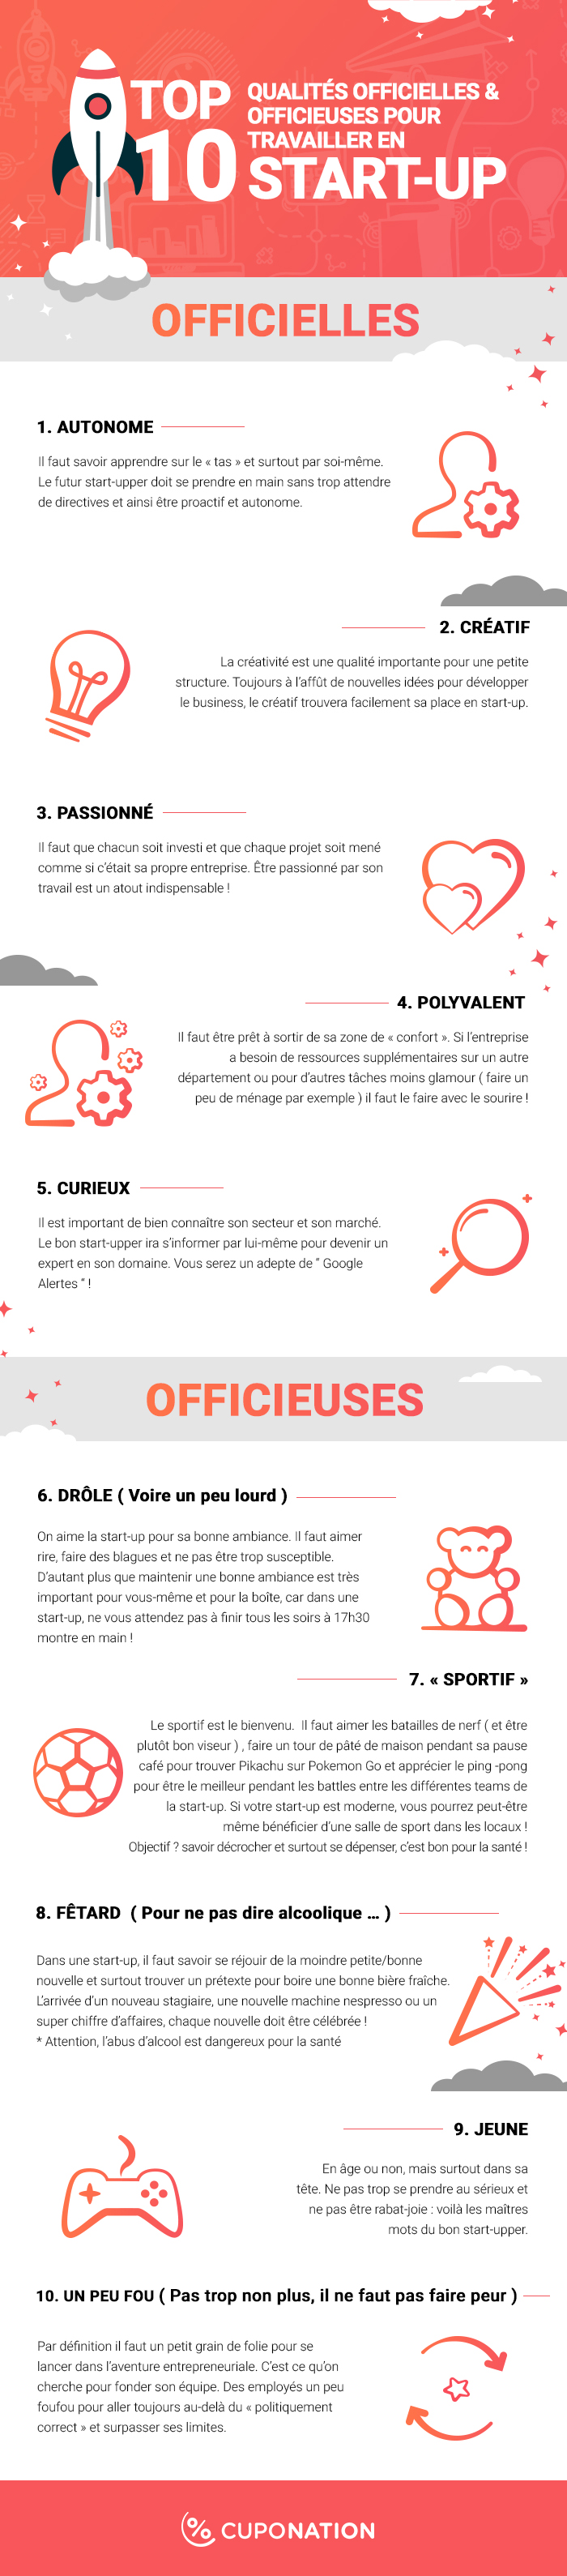 Infographie- Top10_CUPONATION